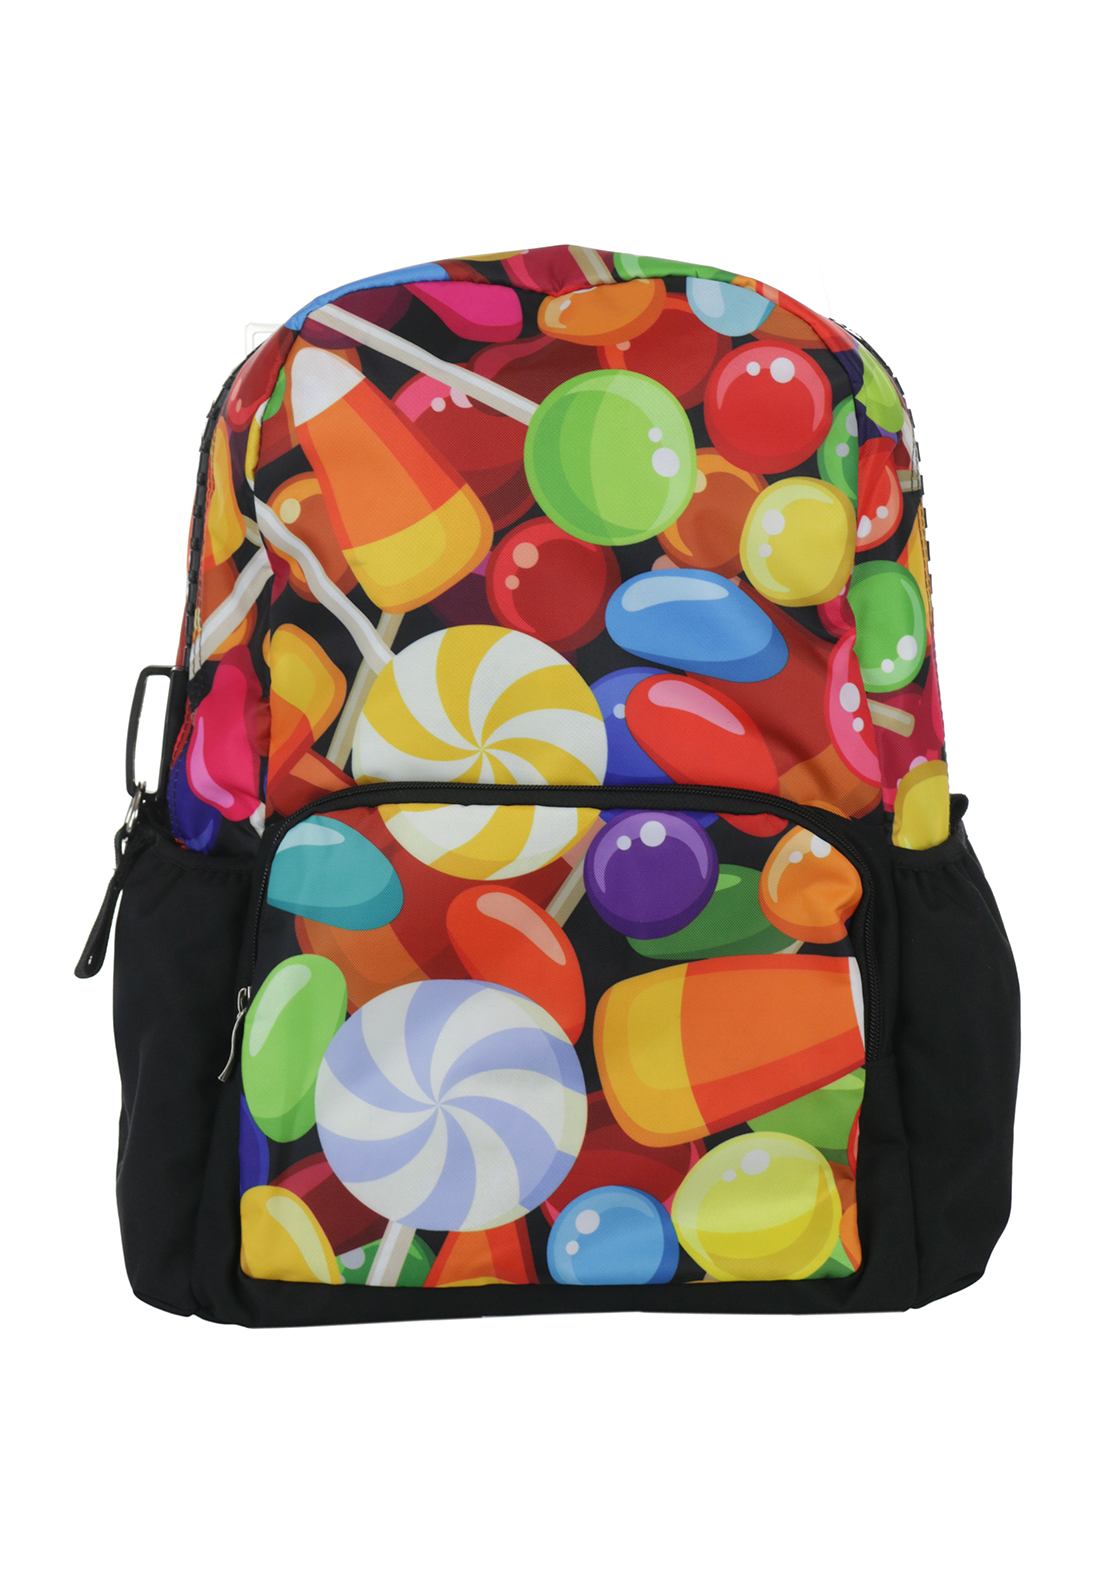 Ridge 53 Vogue Sweets Backpack Schoolbag, Multi-Coloured